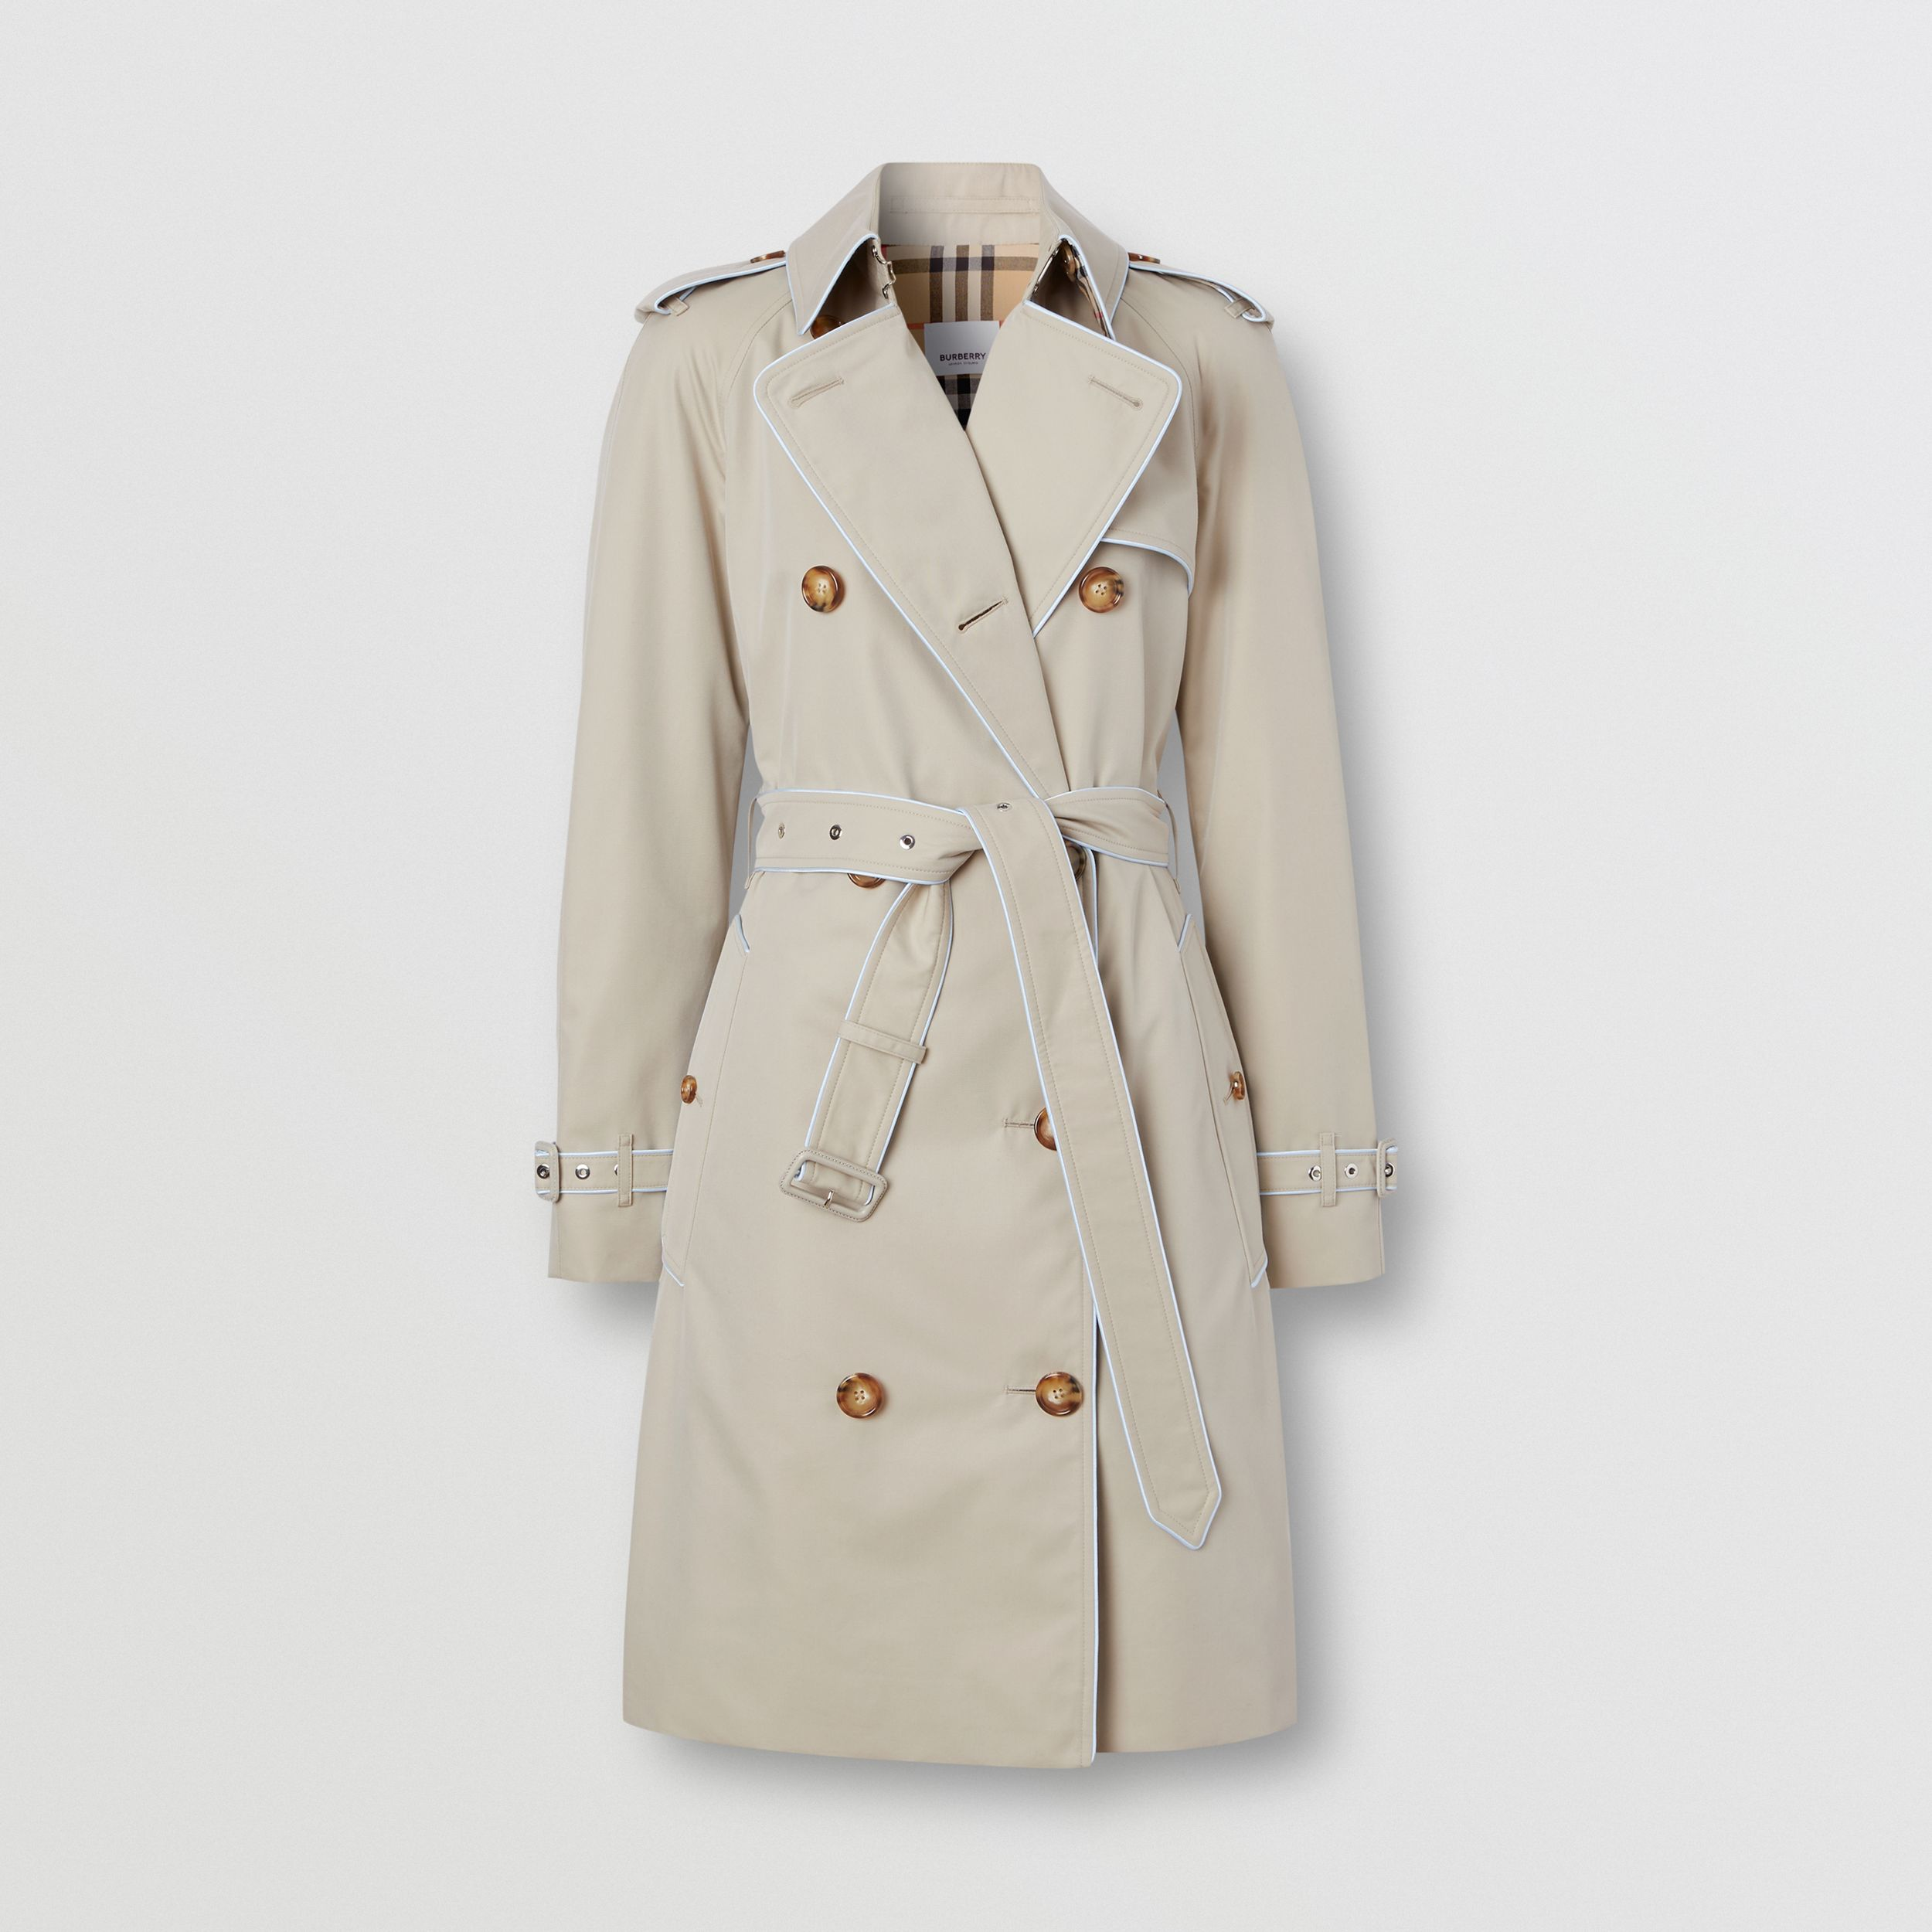 Piped Cotton Gabardine Trench Coat in Stone - Women | Burberry Canada - 4